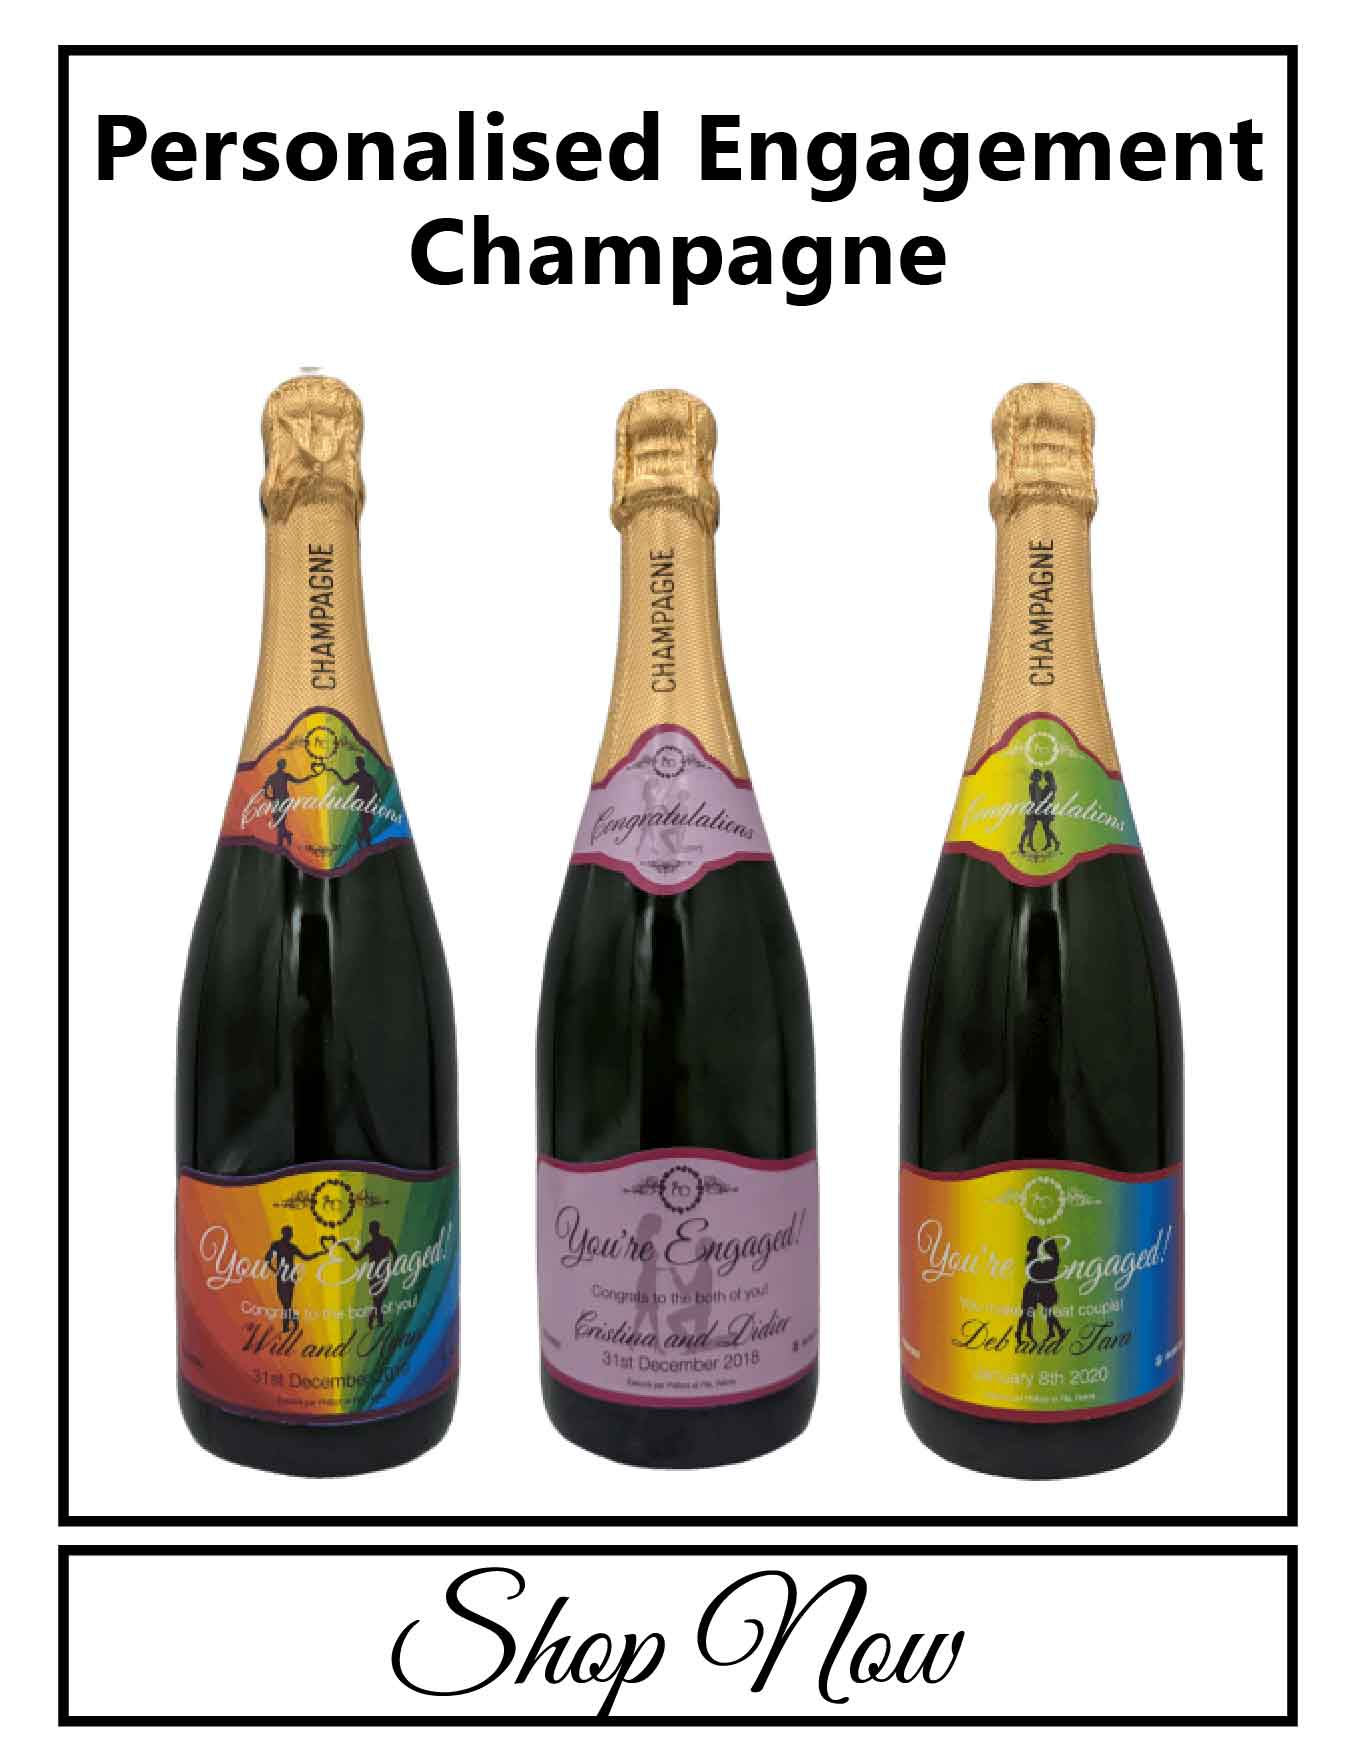 personalised Champagne bottle label delivery uk sparkling wine engagement gift present